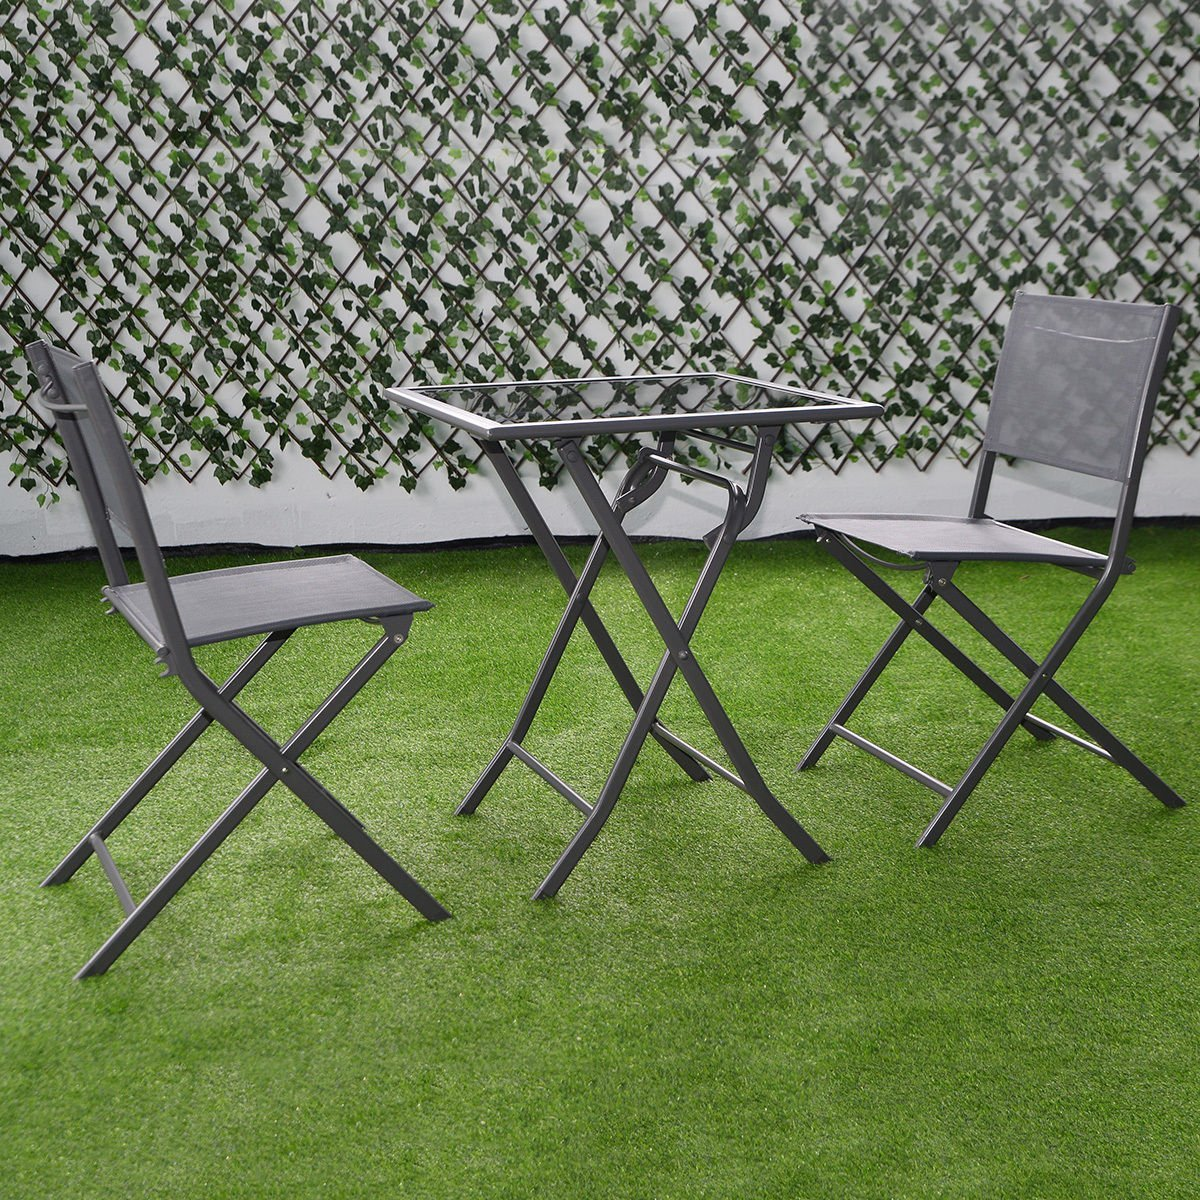 Amazon.com Giantex 3 Pcs Bistro Set Garden Backyard Table Chairs Outdoor Patio Furniture Folding Garden \u0026 Outdoor  sc 1 st  Amazon.com & Amazon.com: Giantex 3 Pcs Bistro Set Garden Backyard Table Chairs ...